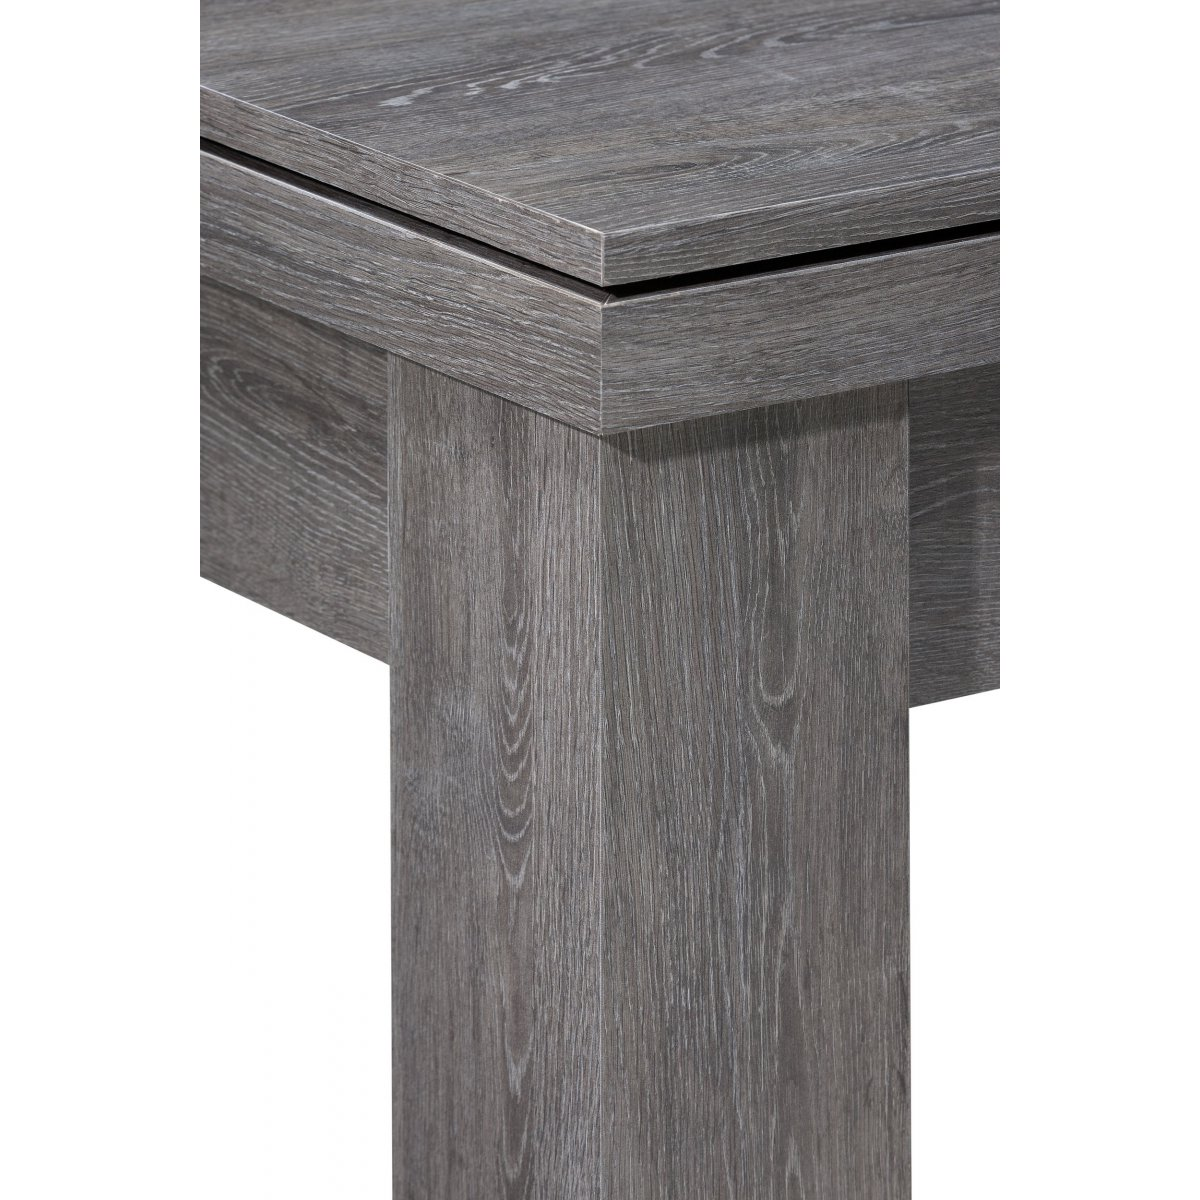 Table billard transformable et dessus de table en bois gris - Table de billard transformable ...